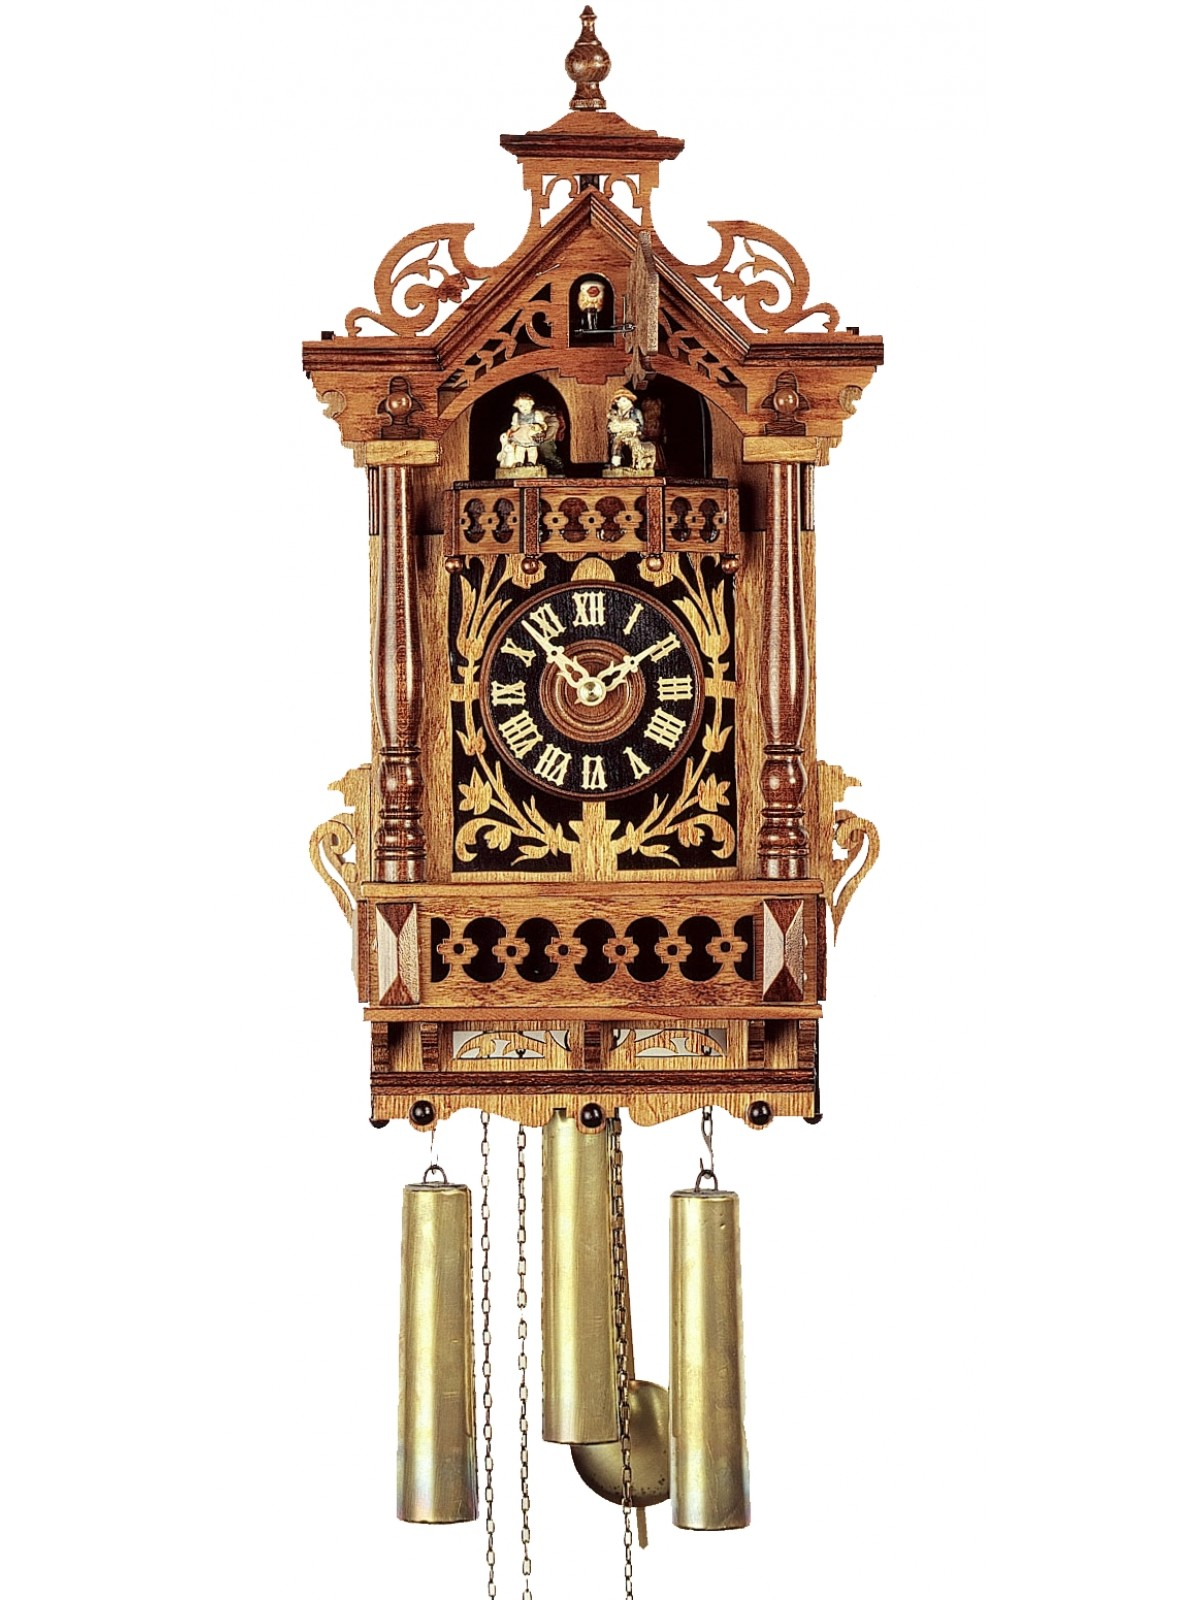 Exclusive cuckoo clock in brown made of wood with awesome carving for home furniture ideas